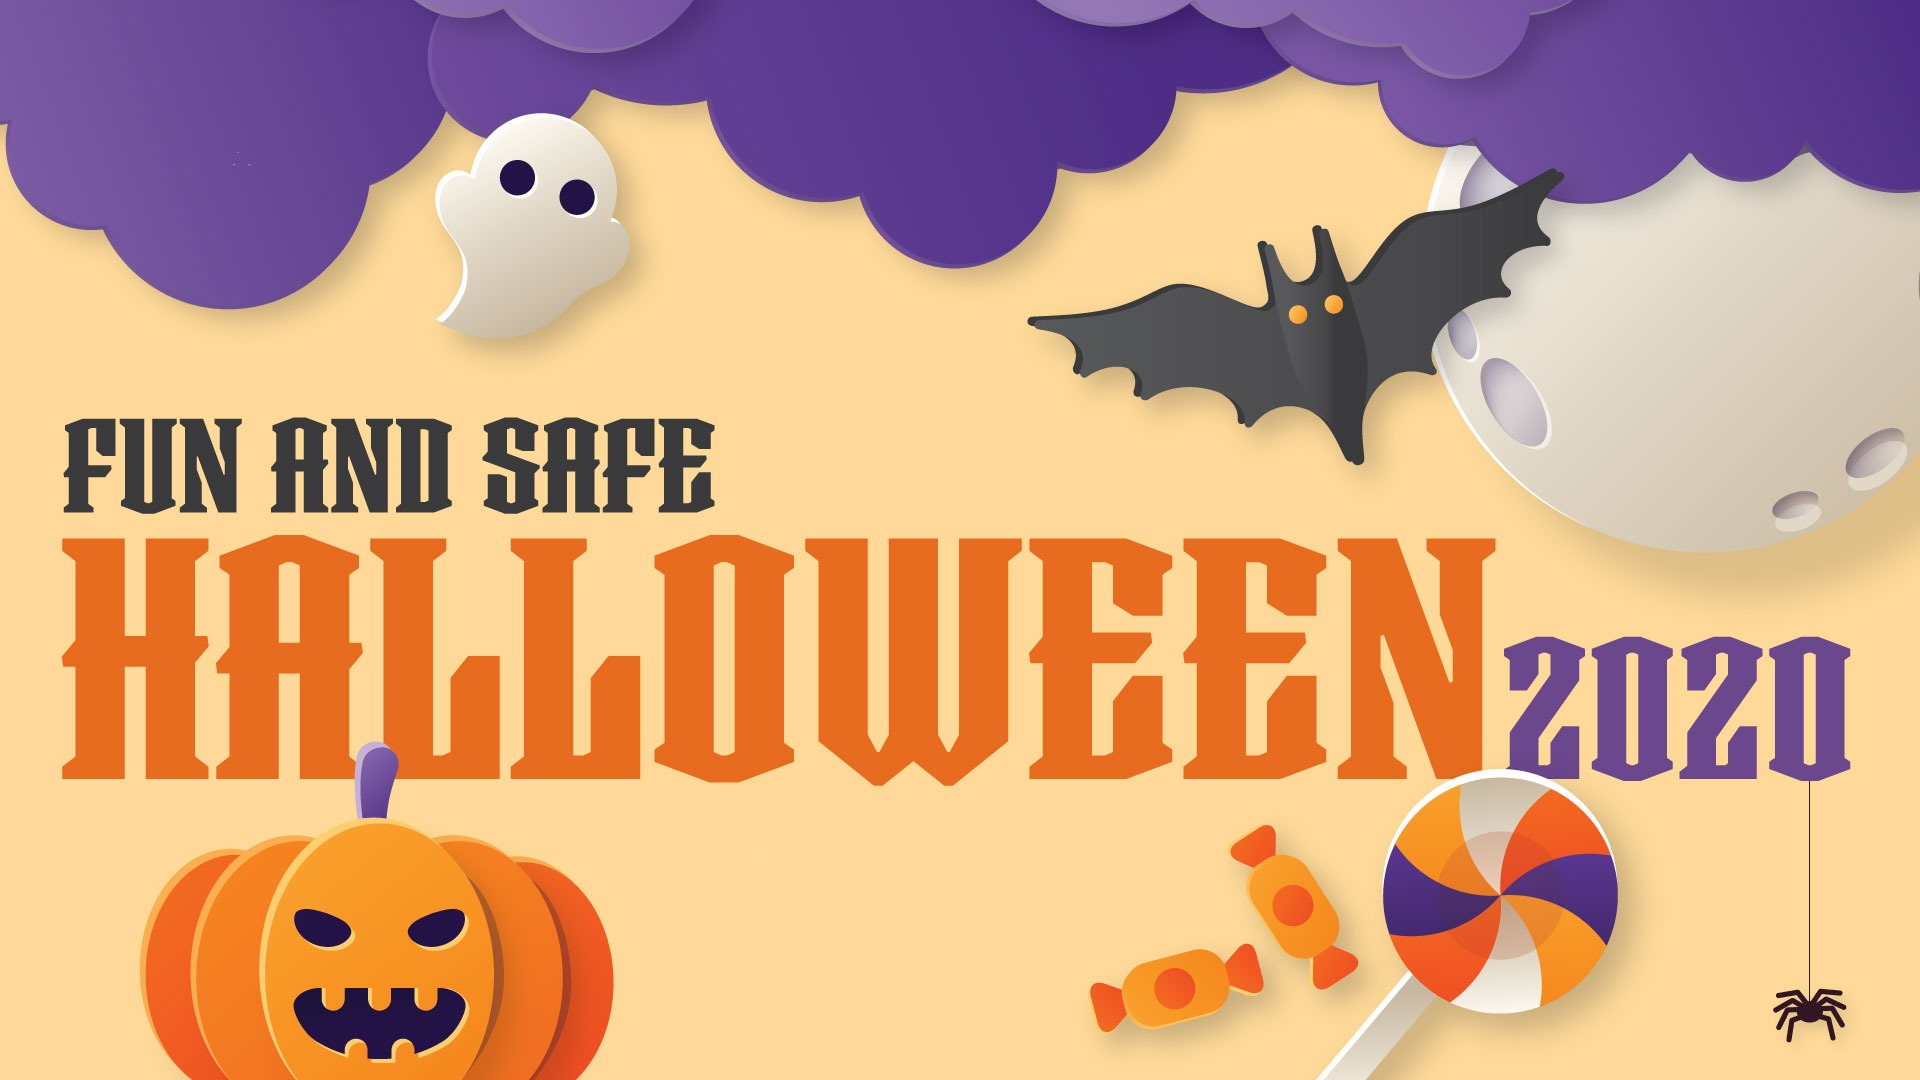 Tips for a fun and safe Halloween in 2020